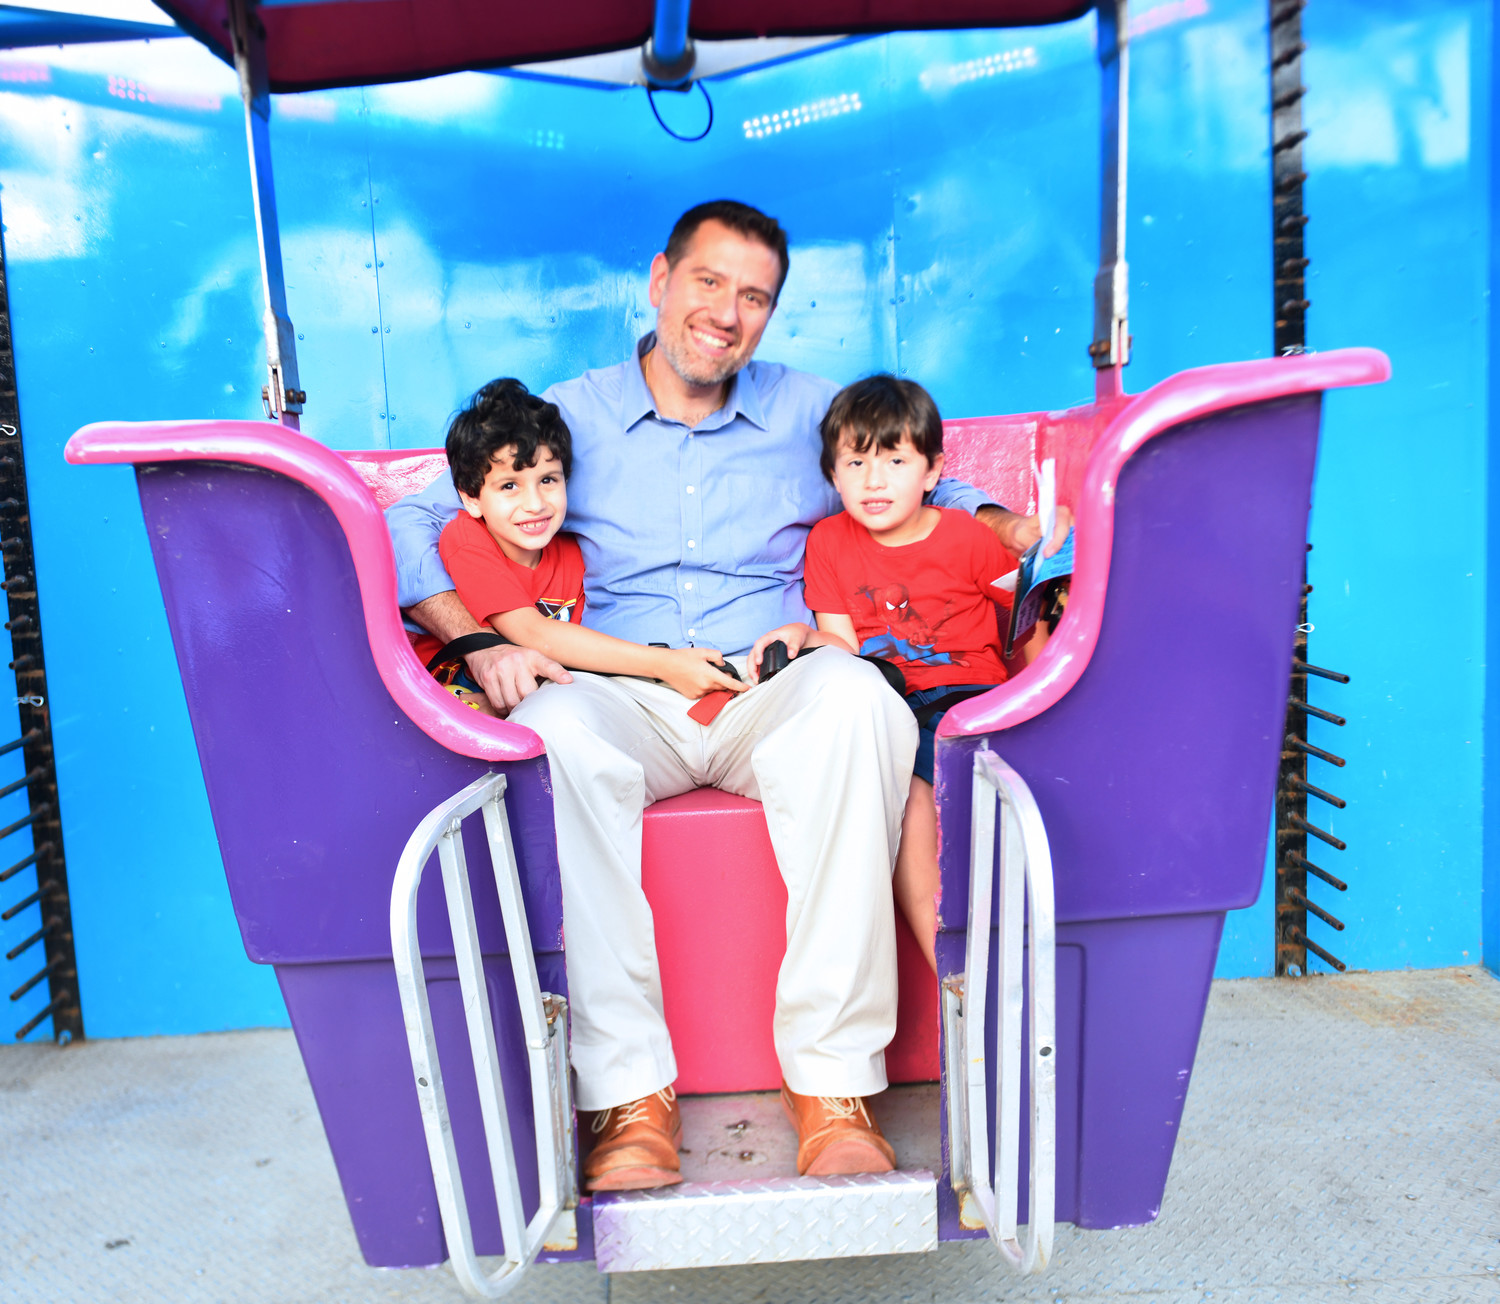 The Romito family, from left, Antonio, Anthony and Francesco, took a ride on the Ferris wheel.